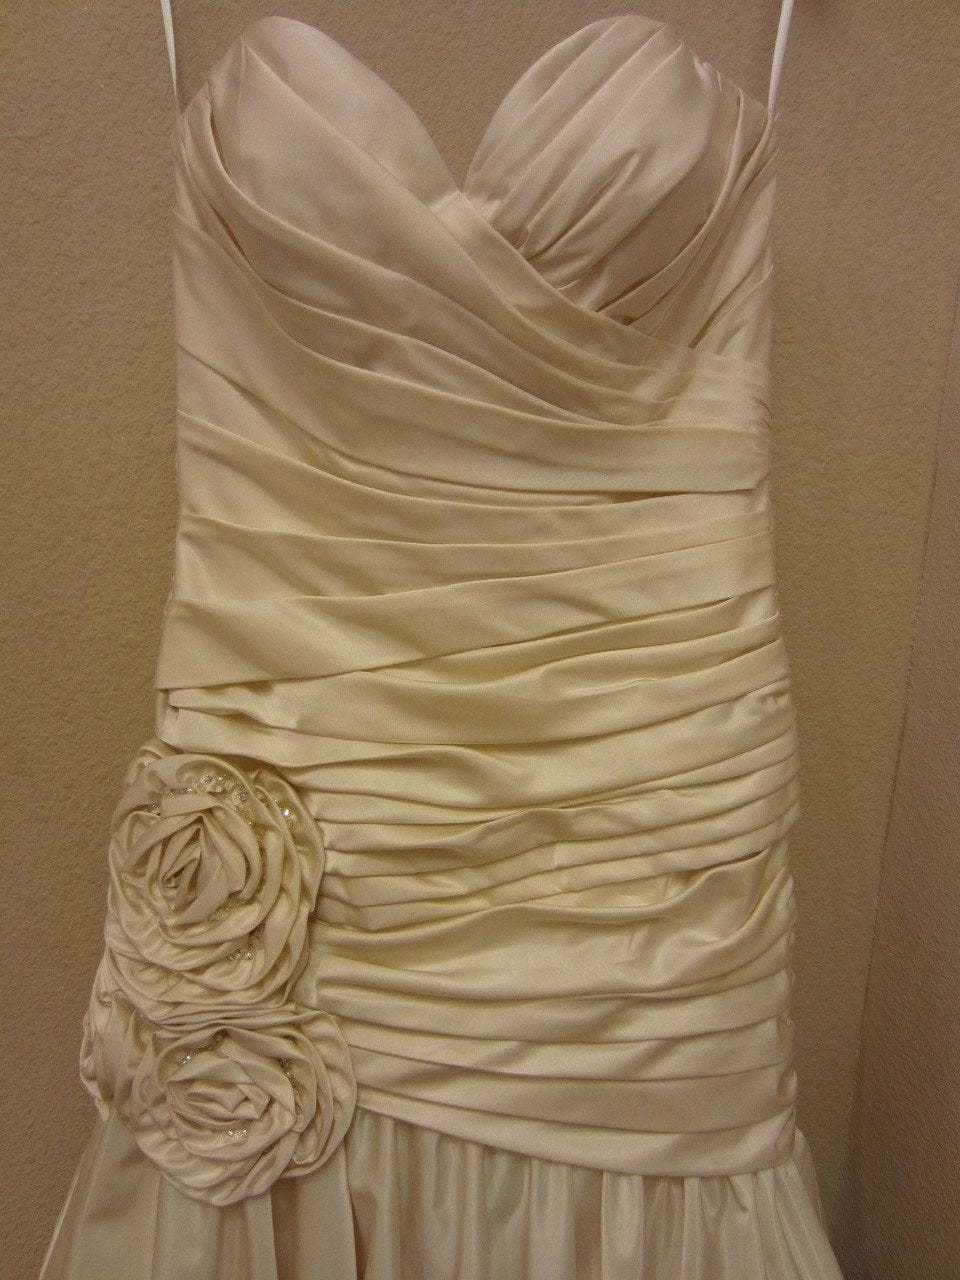 Allure 2503 Cream/Silver size 10 In Stock Wedding Dress - Tom's Bridal